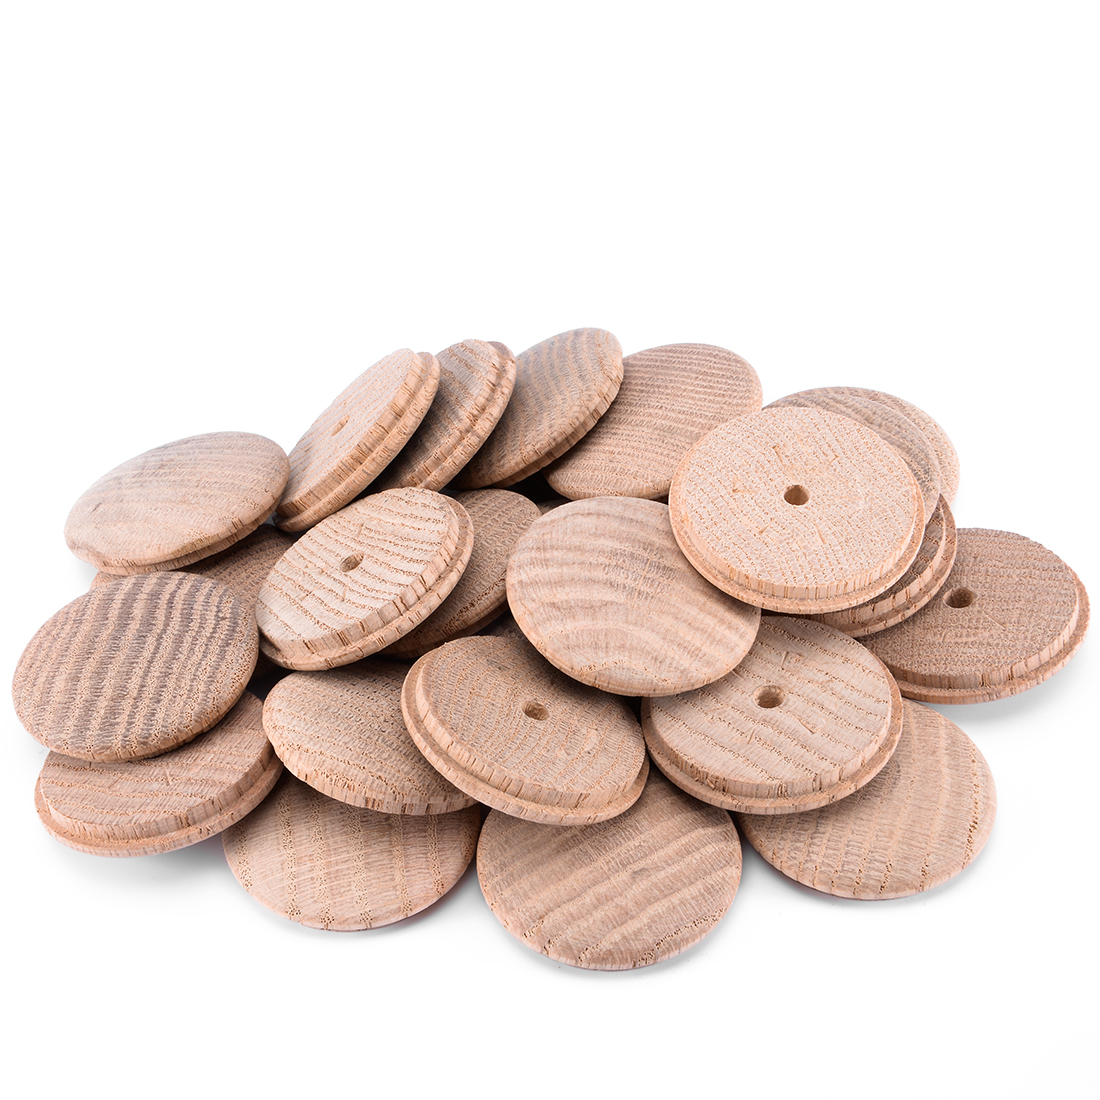 1-4/5-Inch Oak Button Top Wood Plugs 25 Pcs